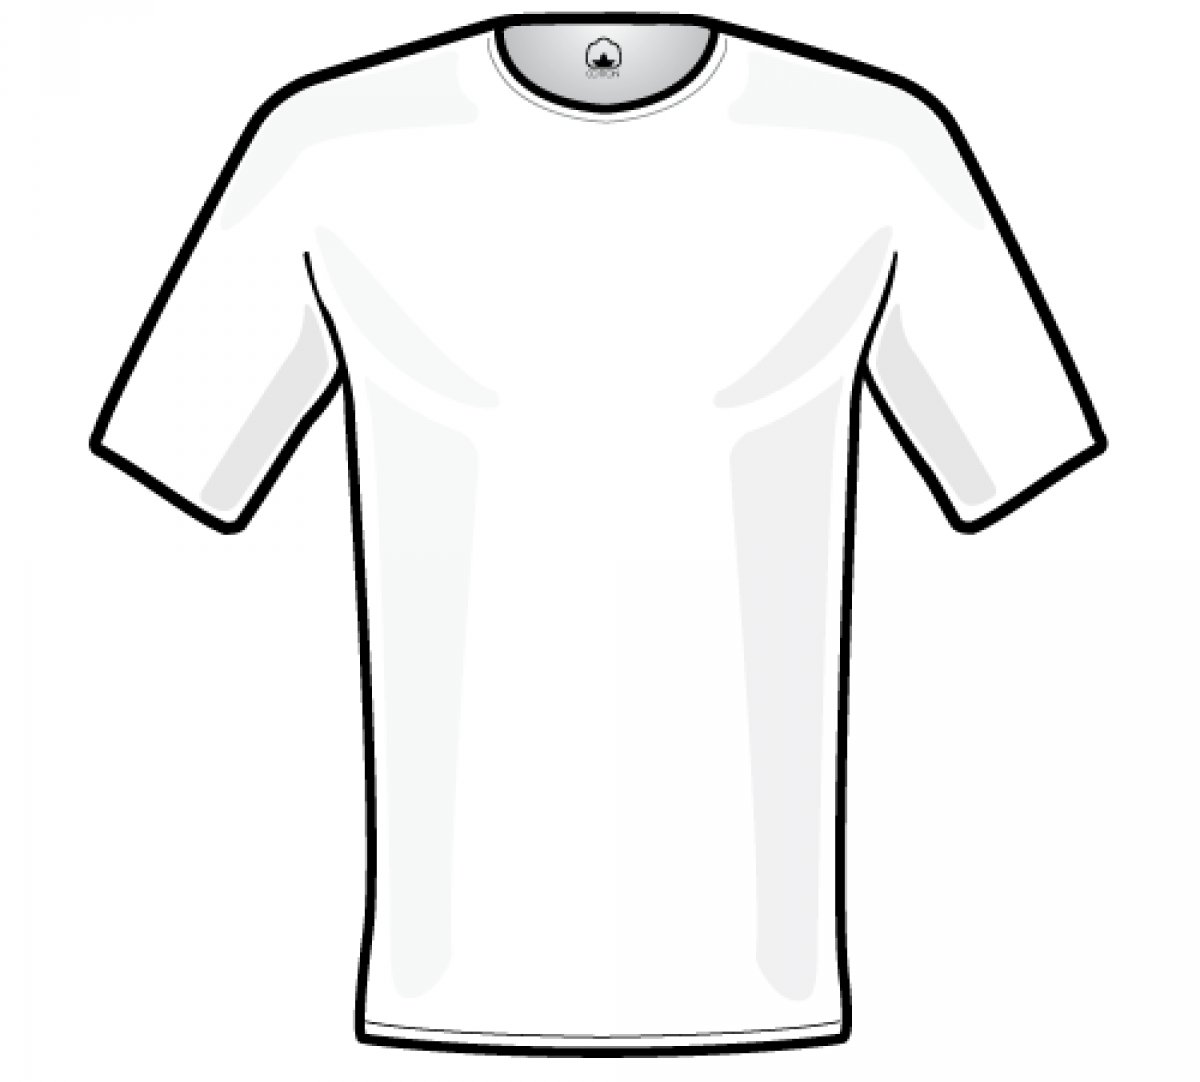 c091c1112 Design awesome t-shirts without any cost at our designing studio.